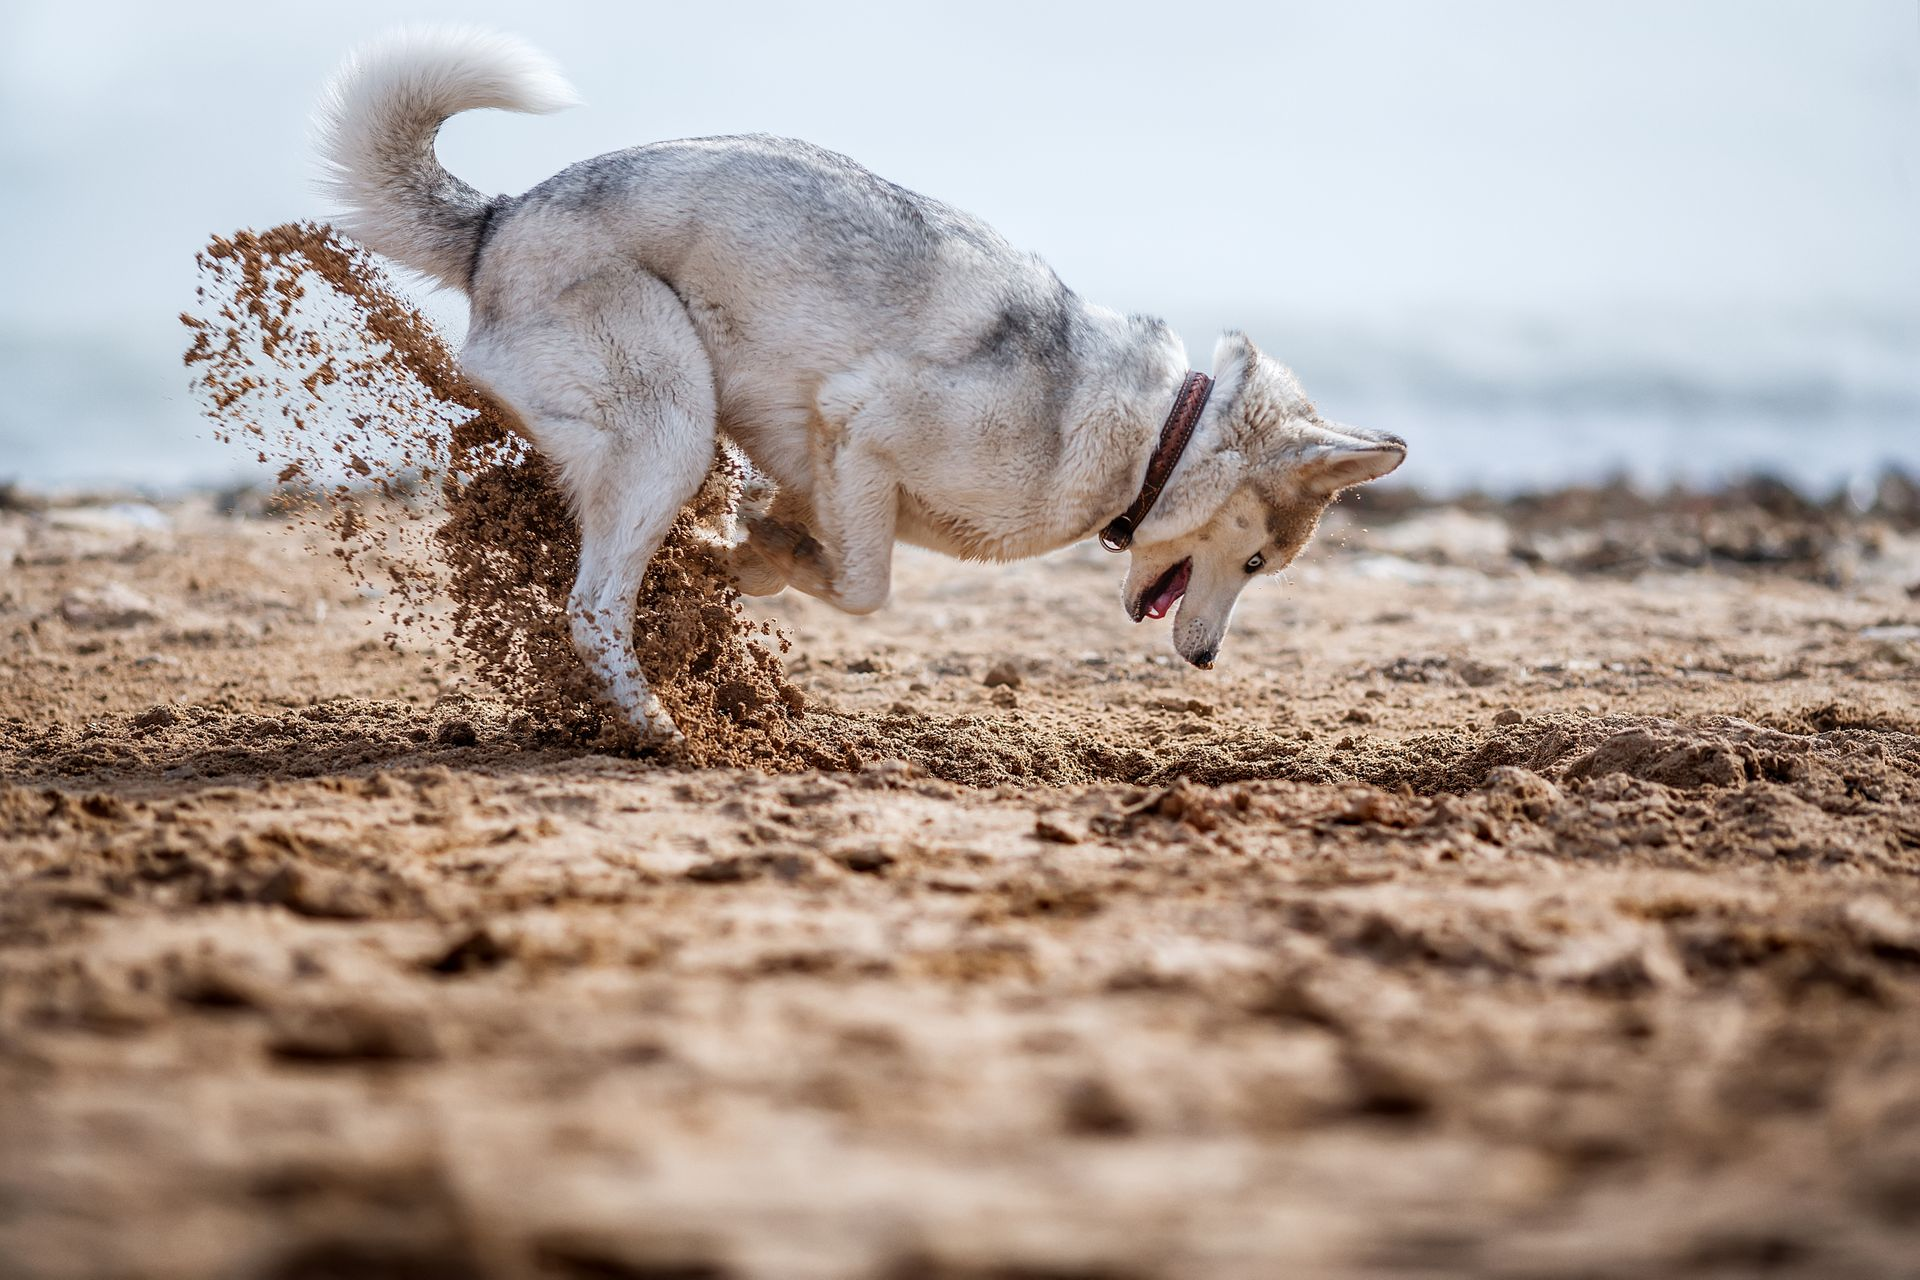 A husky digs a hole in the sand.